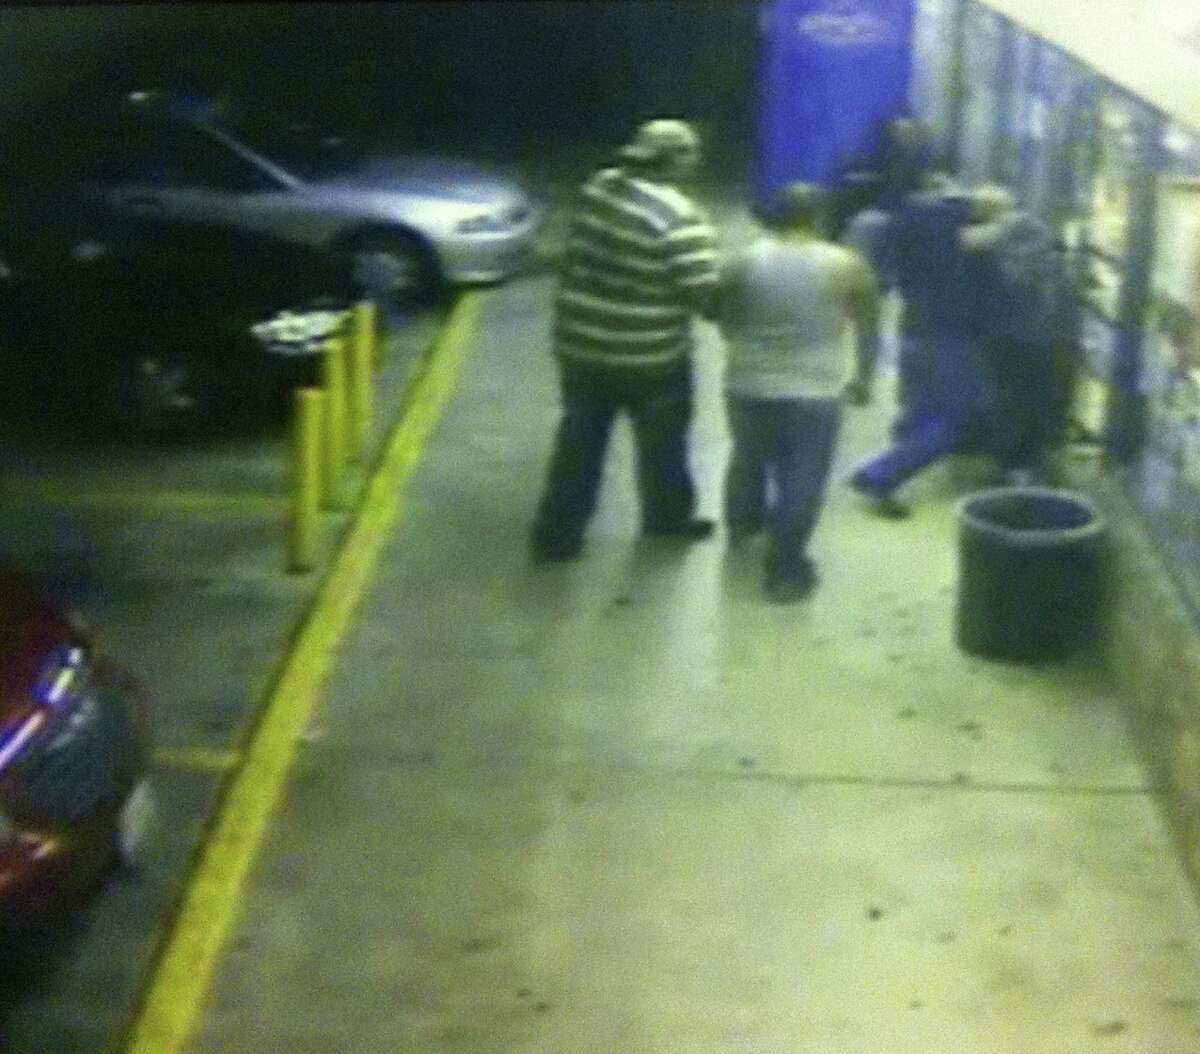 A security camera shows the beginning of the fatal October 2012 beating of Juan Romero outside Diamond Food Mart. Jose Velez (center) was given a 45-year sentence for his part.